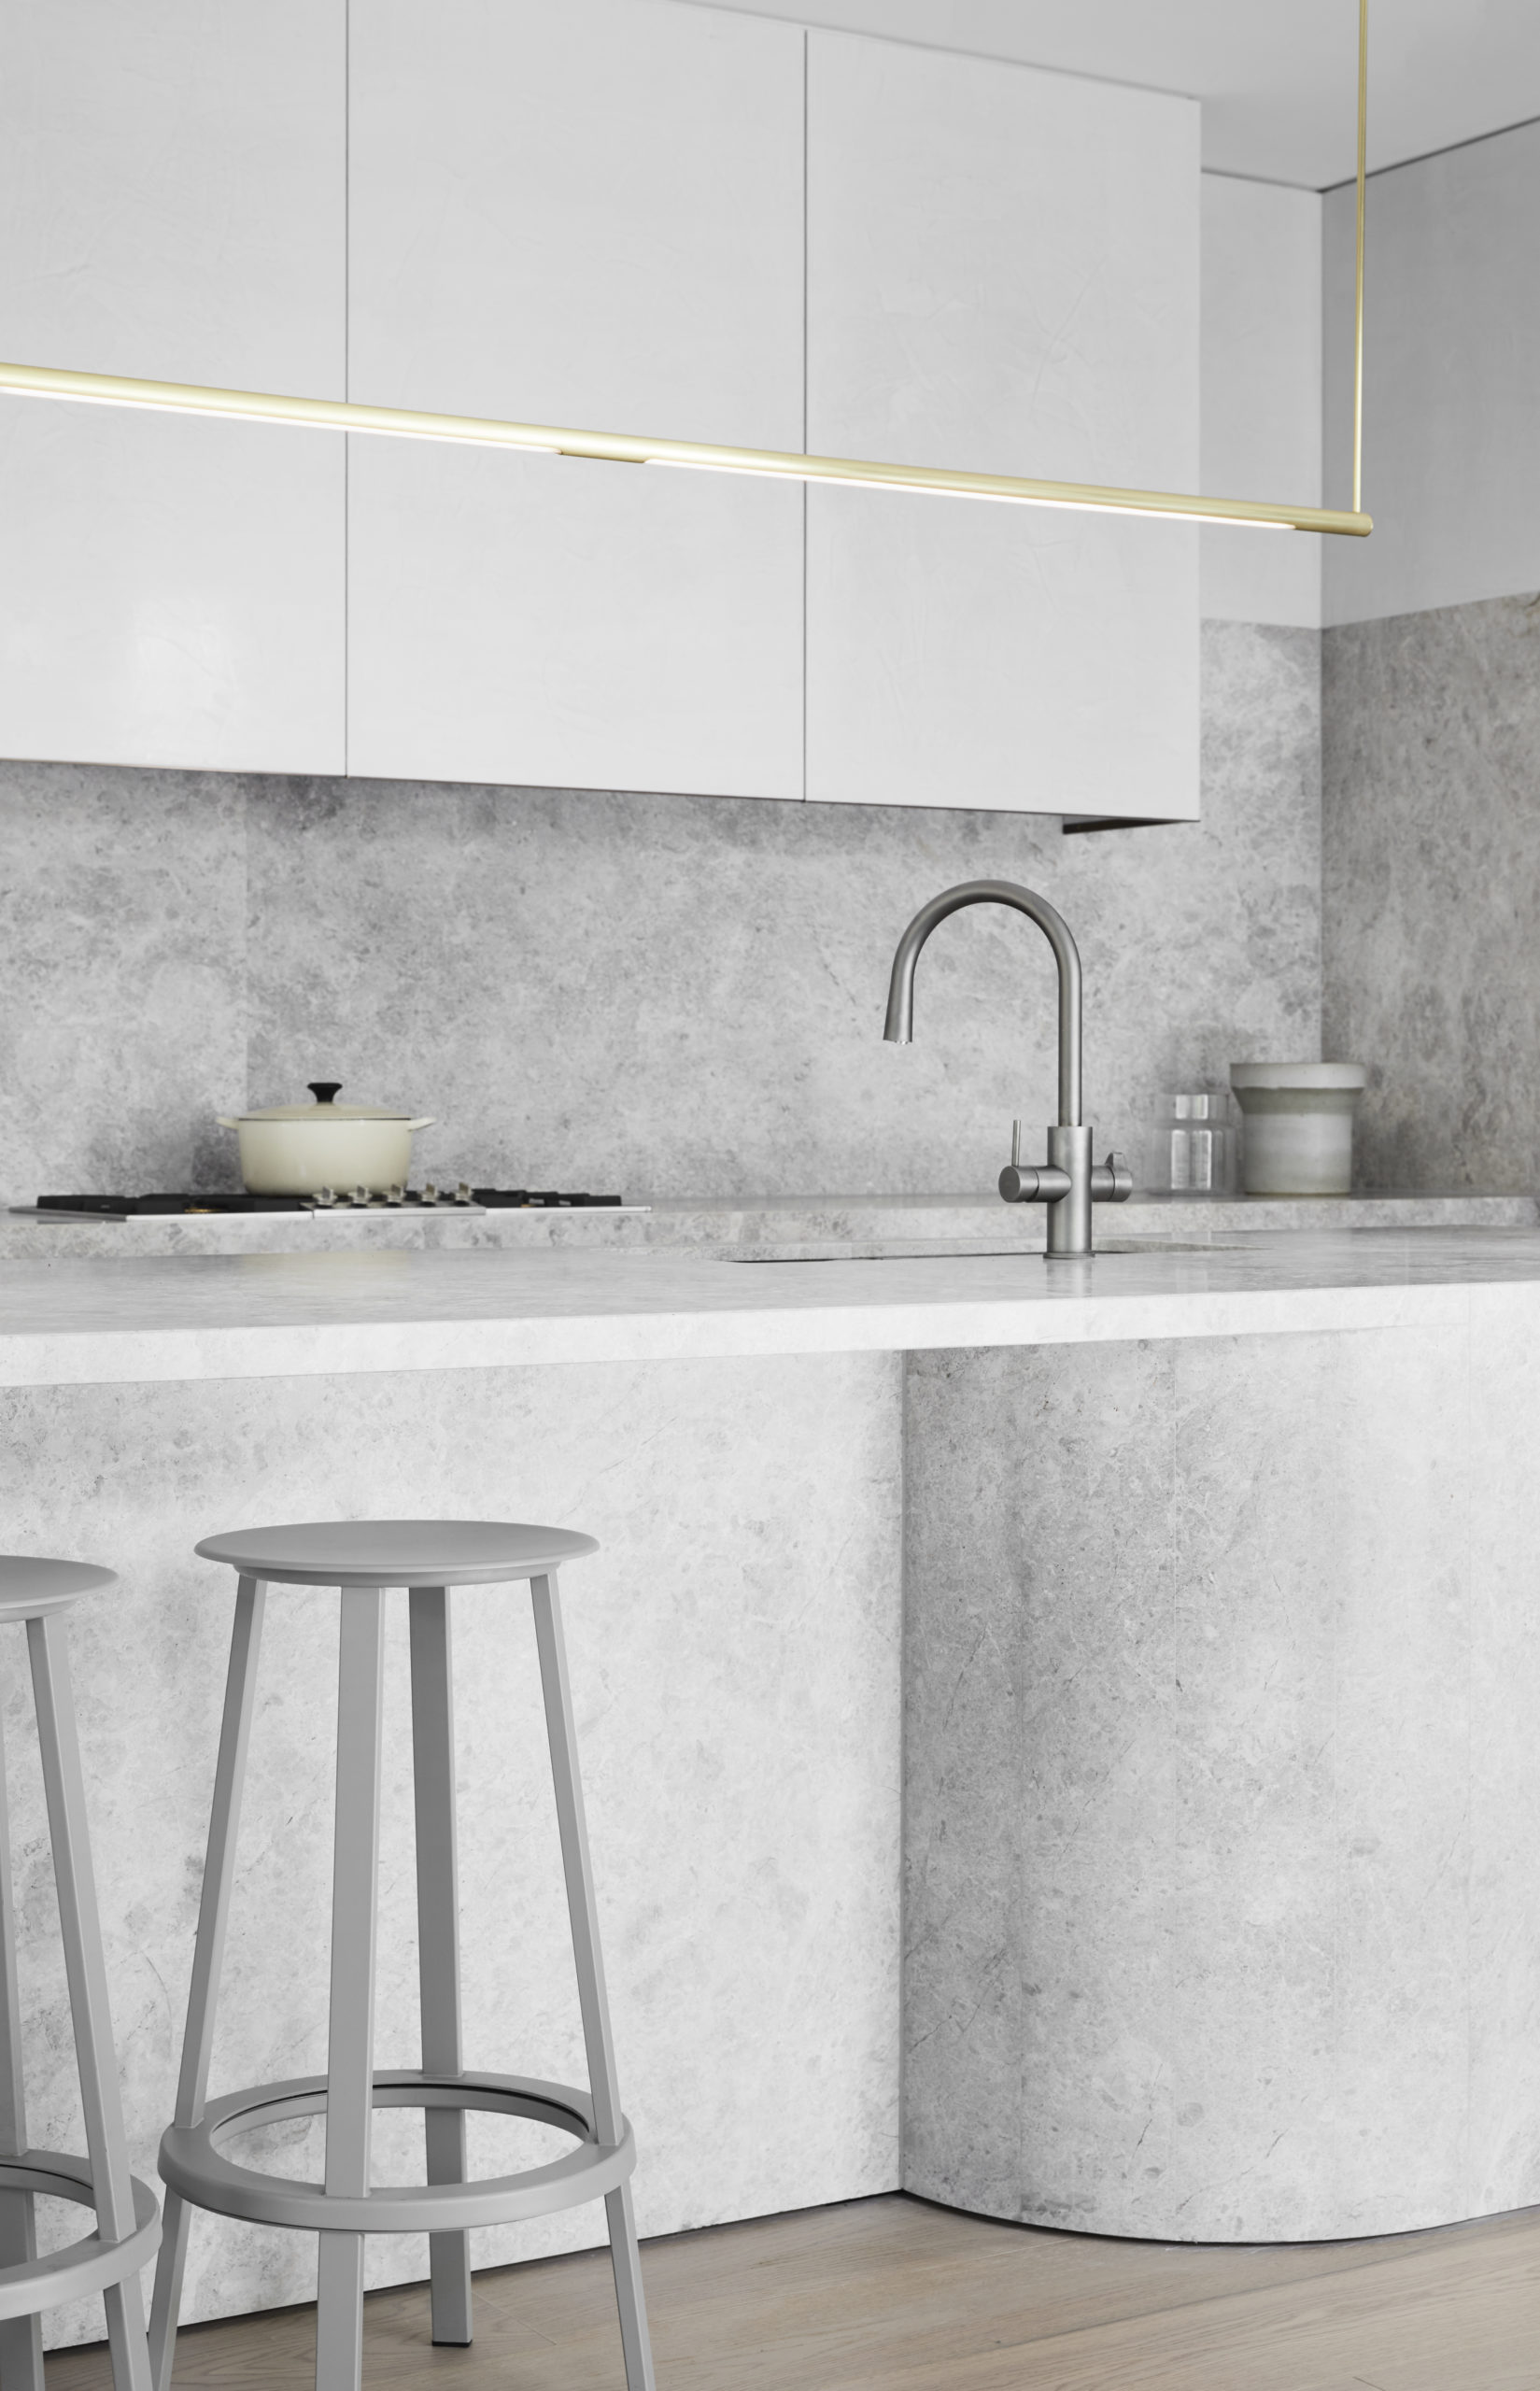 est living sussex street apartments mim design powell and glenn 9 scaled